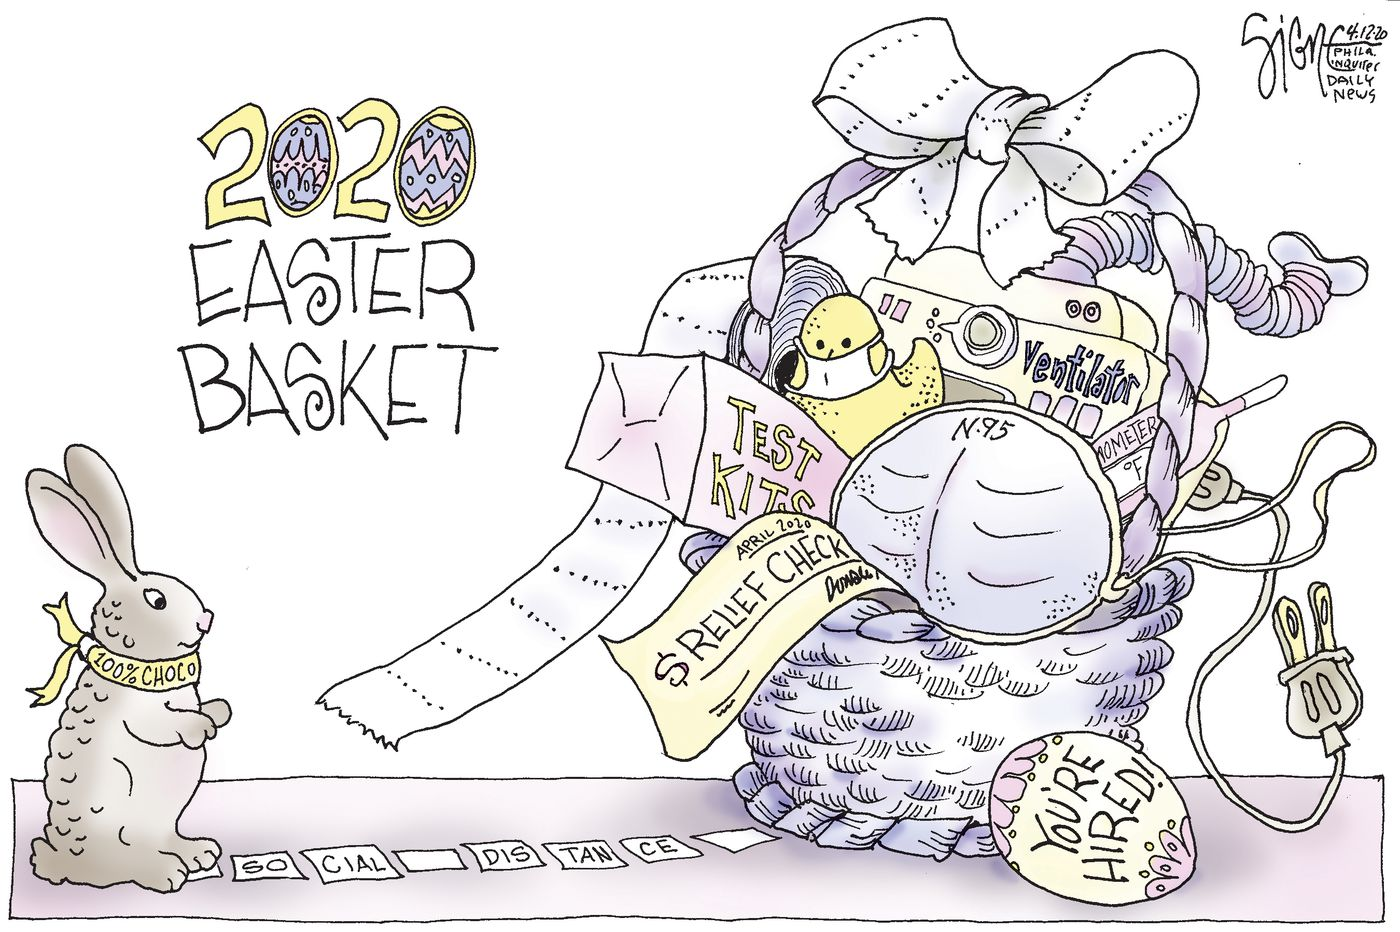 Political Cartoon: 2020 Easter Covid-19 Basket